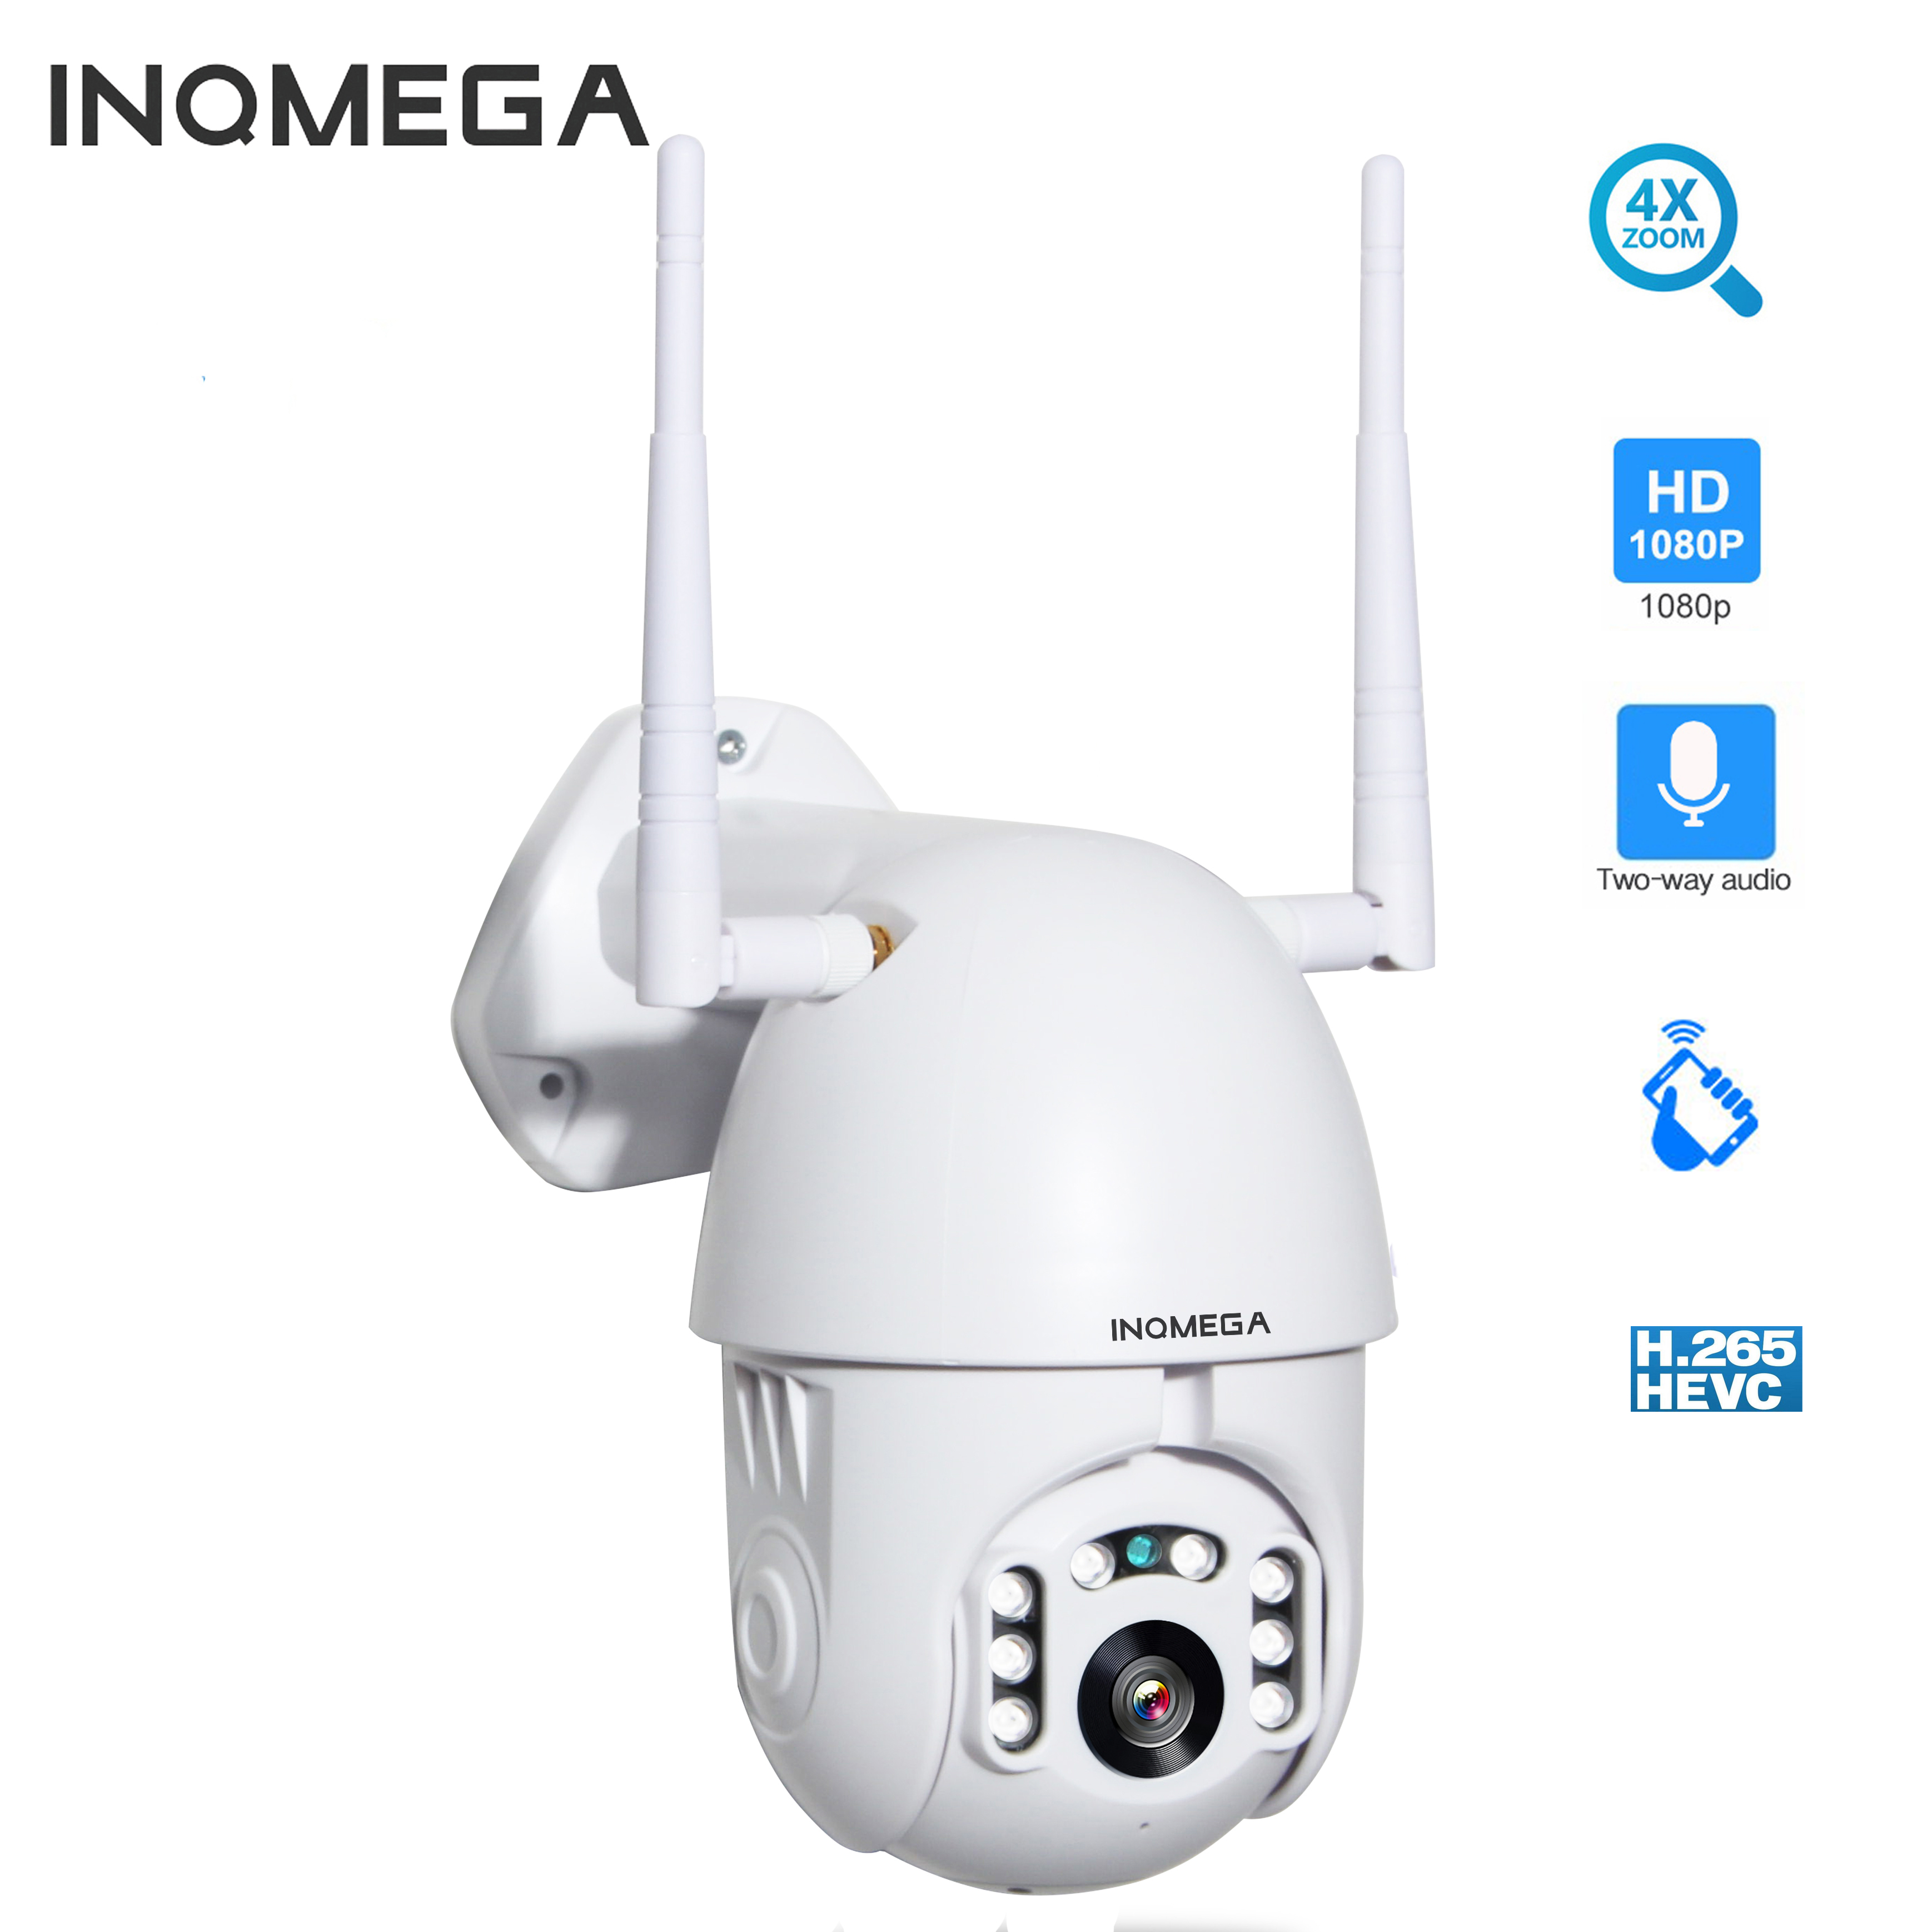 INQMEGA 4X Digital Zoom H.265X 1080p PTZ IP Camera Outdoor  Speed Dome CCTV Security Cameras  WIFI Exterior IR Home Surveilance|Surveillance Cameras|   - AliExpress